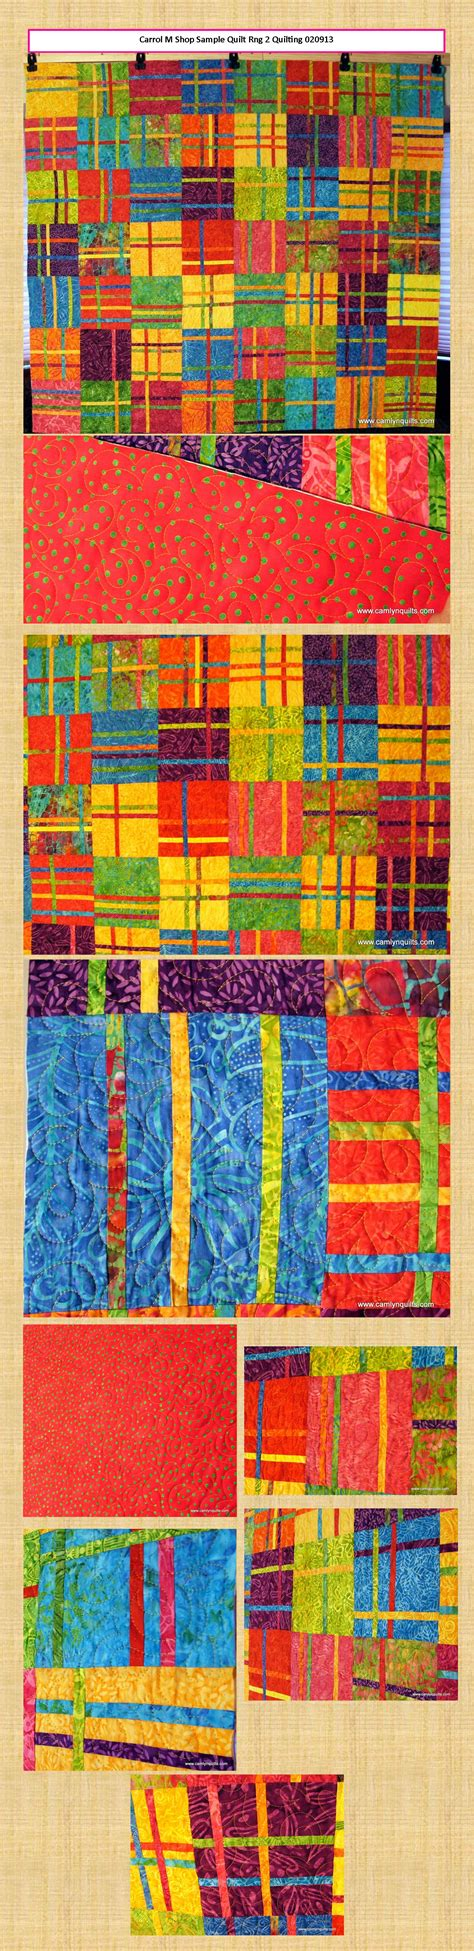 M S Quilts by Detailed Pictures Of Carroll M S Quilt Shop Shop